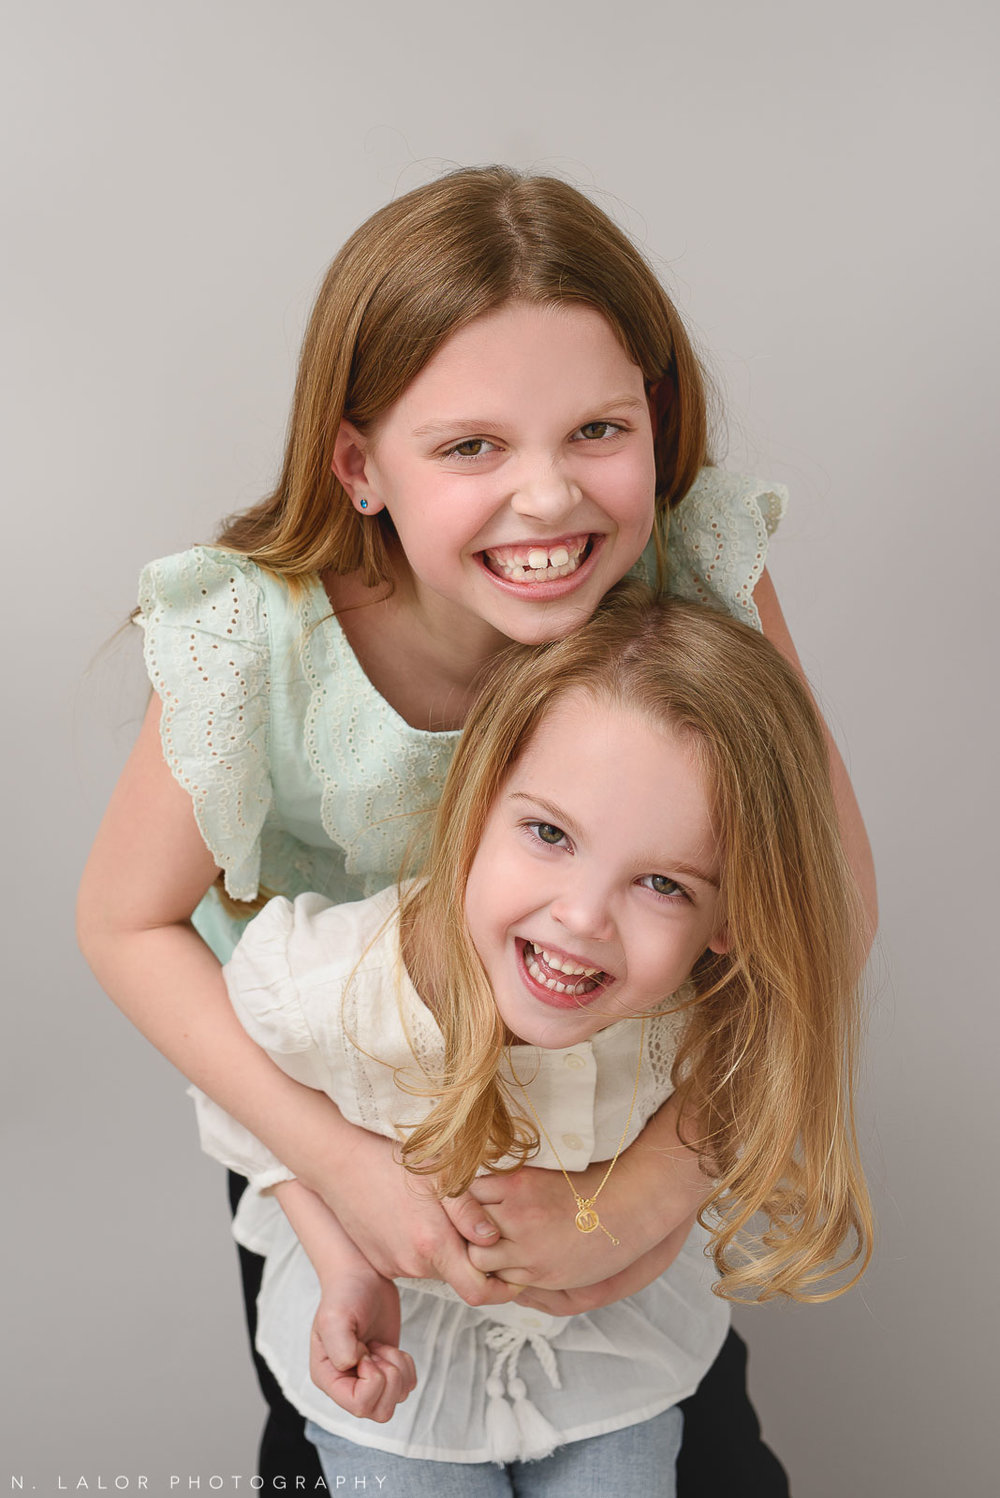 Image of two sisters laughing. Studio portrait by N. Lalor Photography in Greenwich, Connecticut.